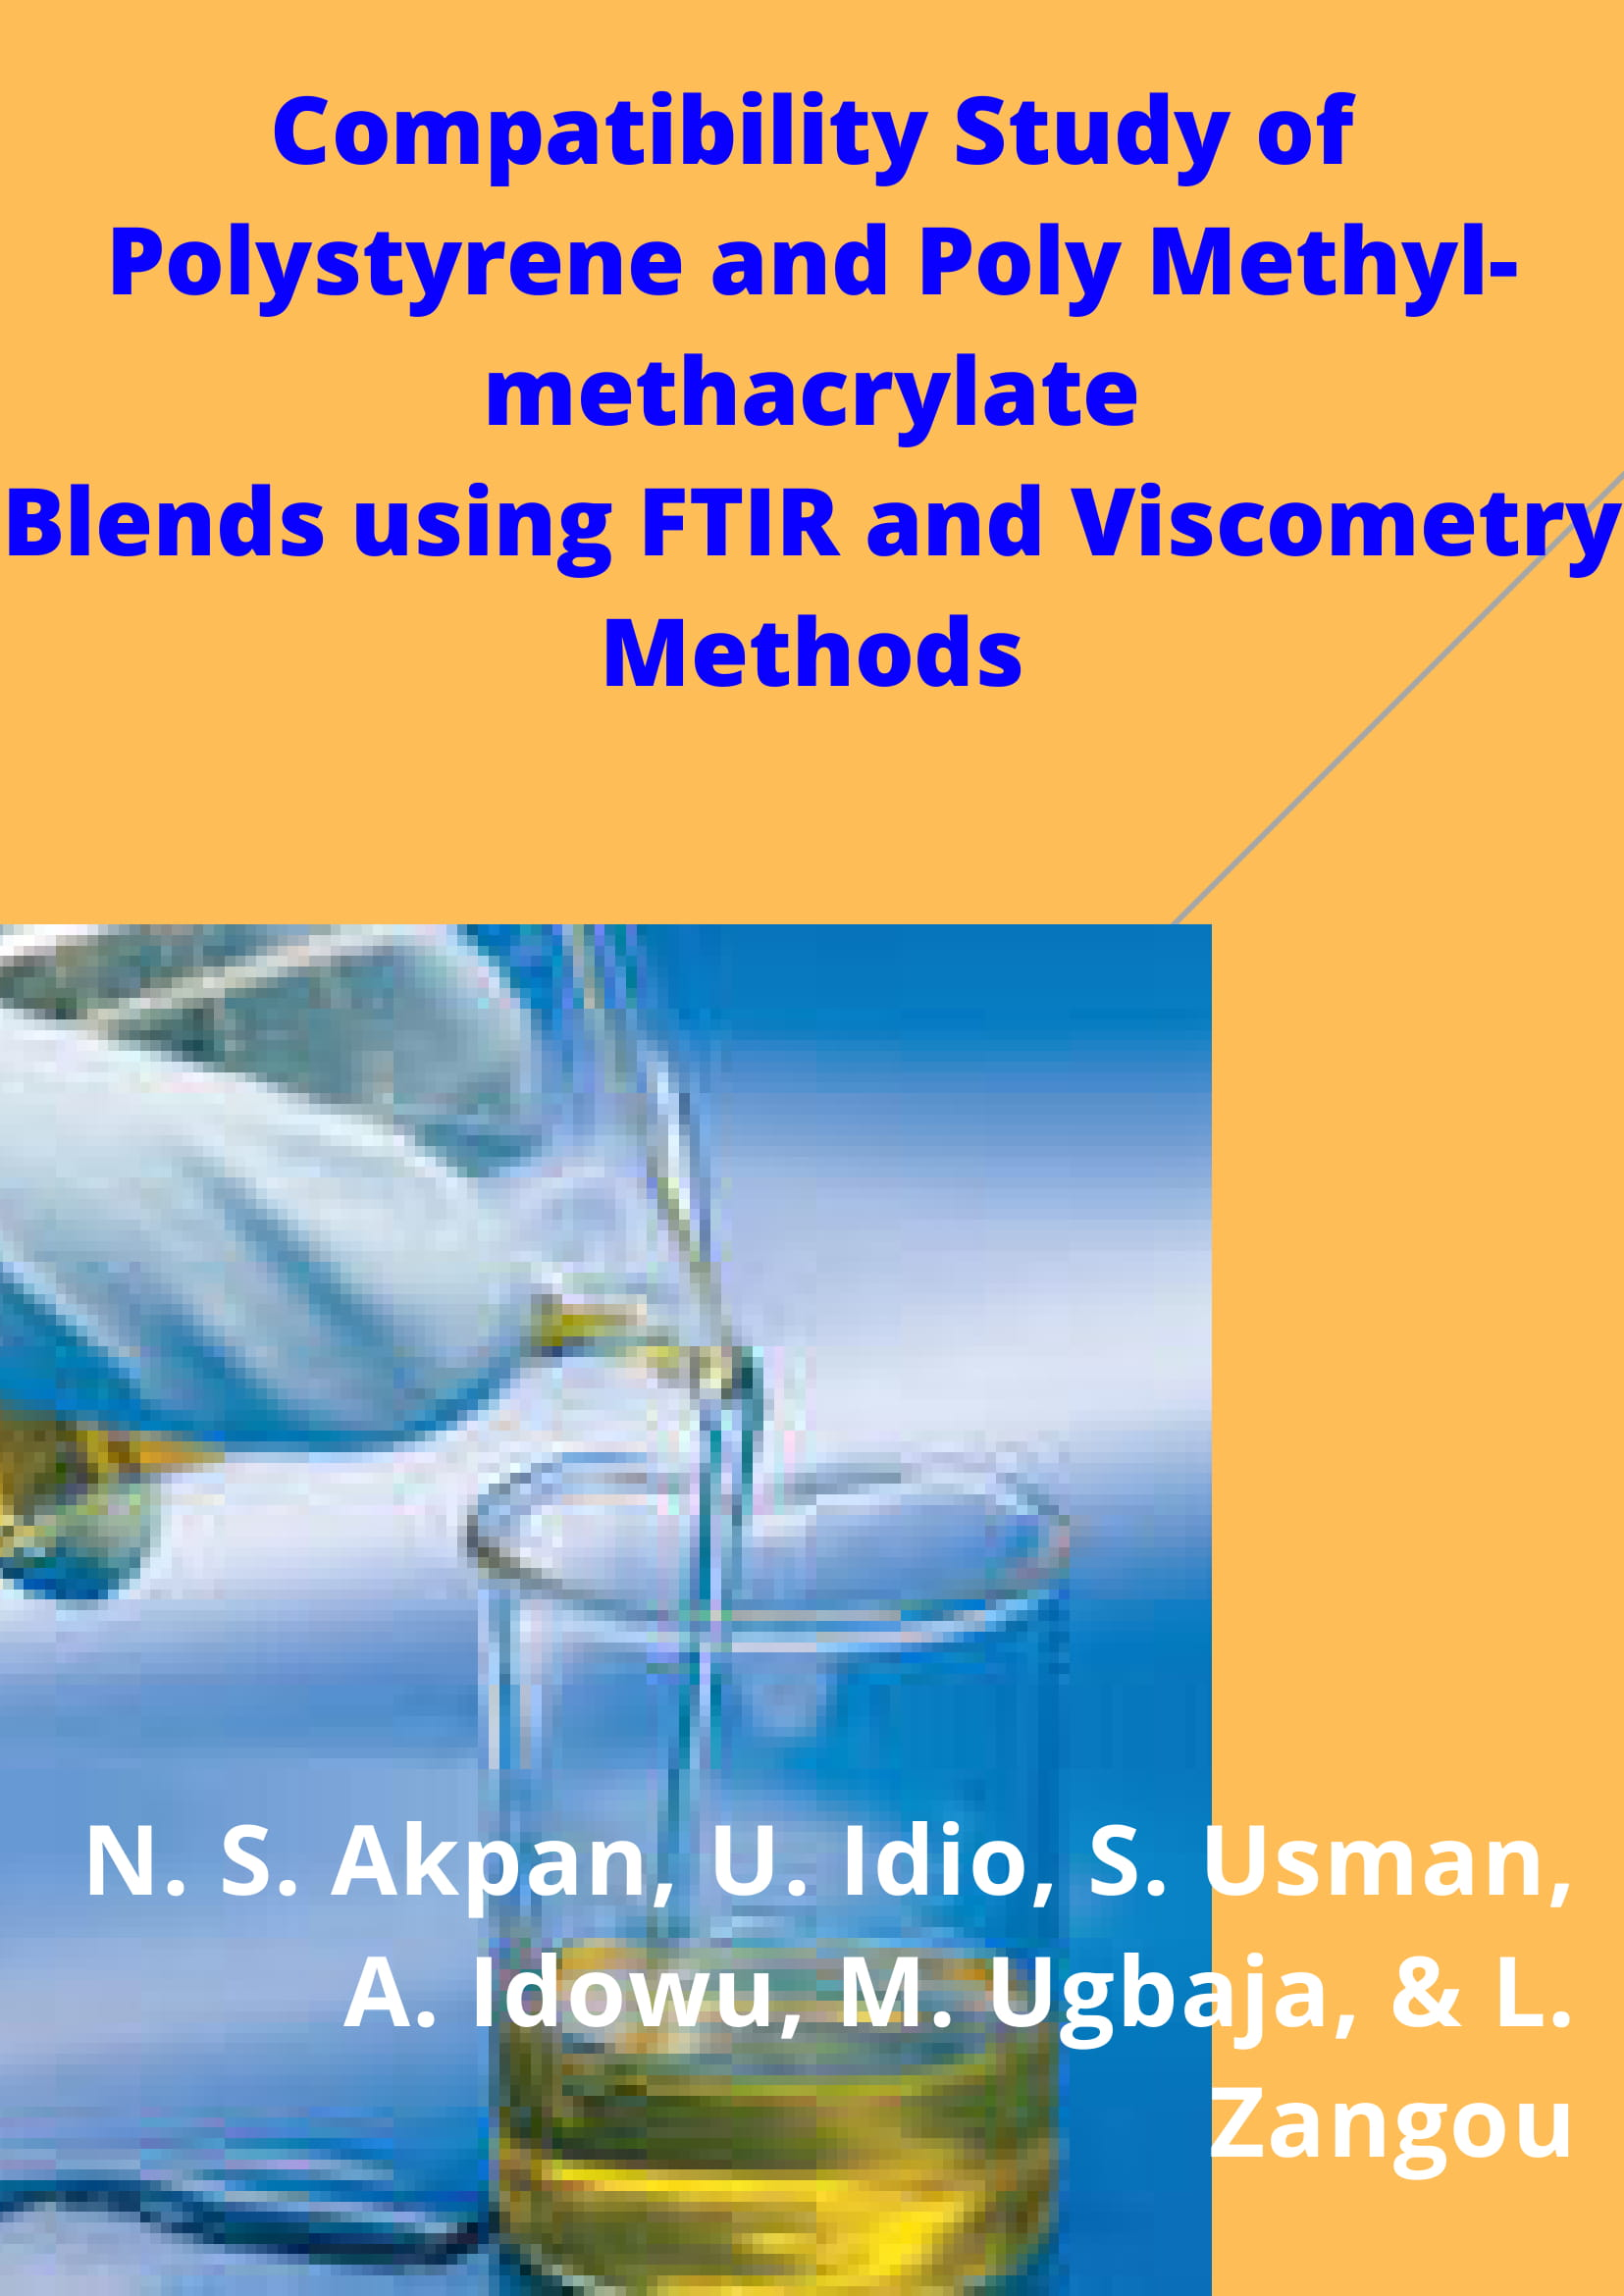 Compatibility Study of Polystyrene and Poly Methyl-methacrylate Blends using FTIR and Viscometry Methods Image